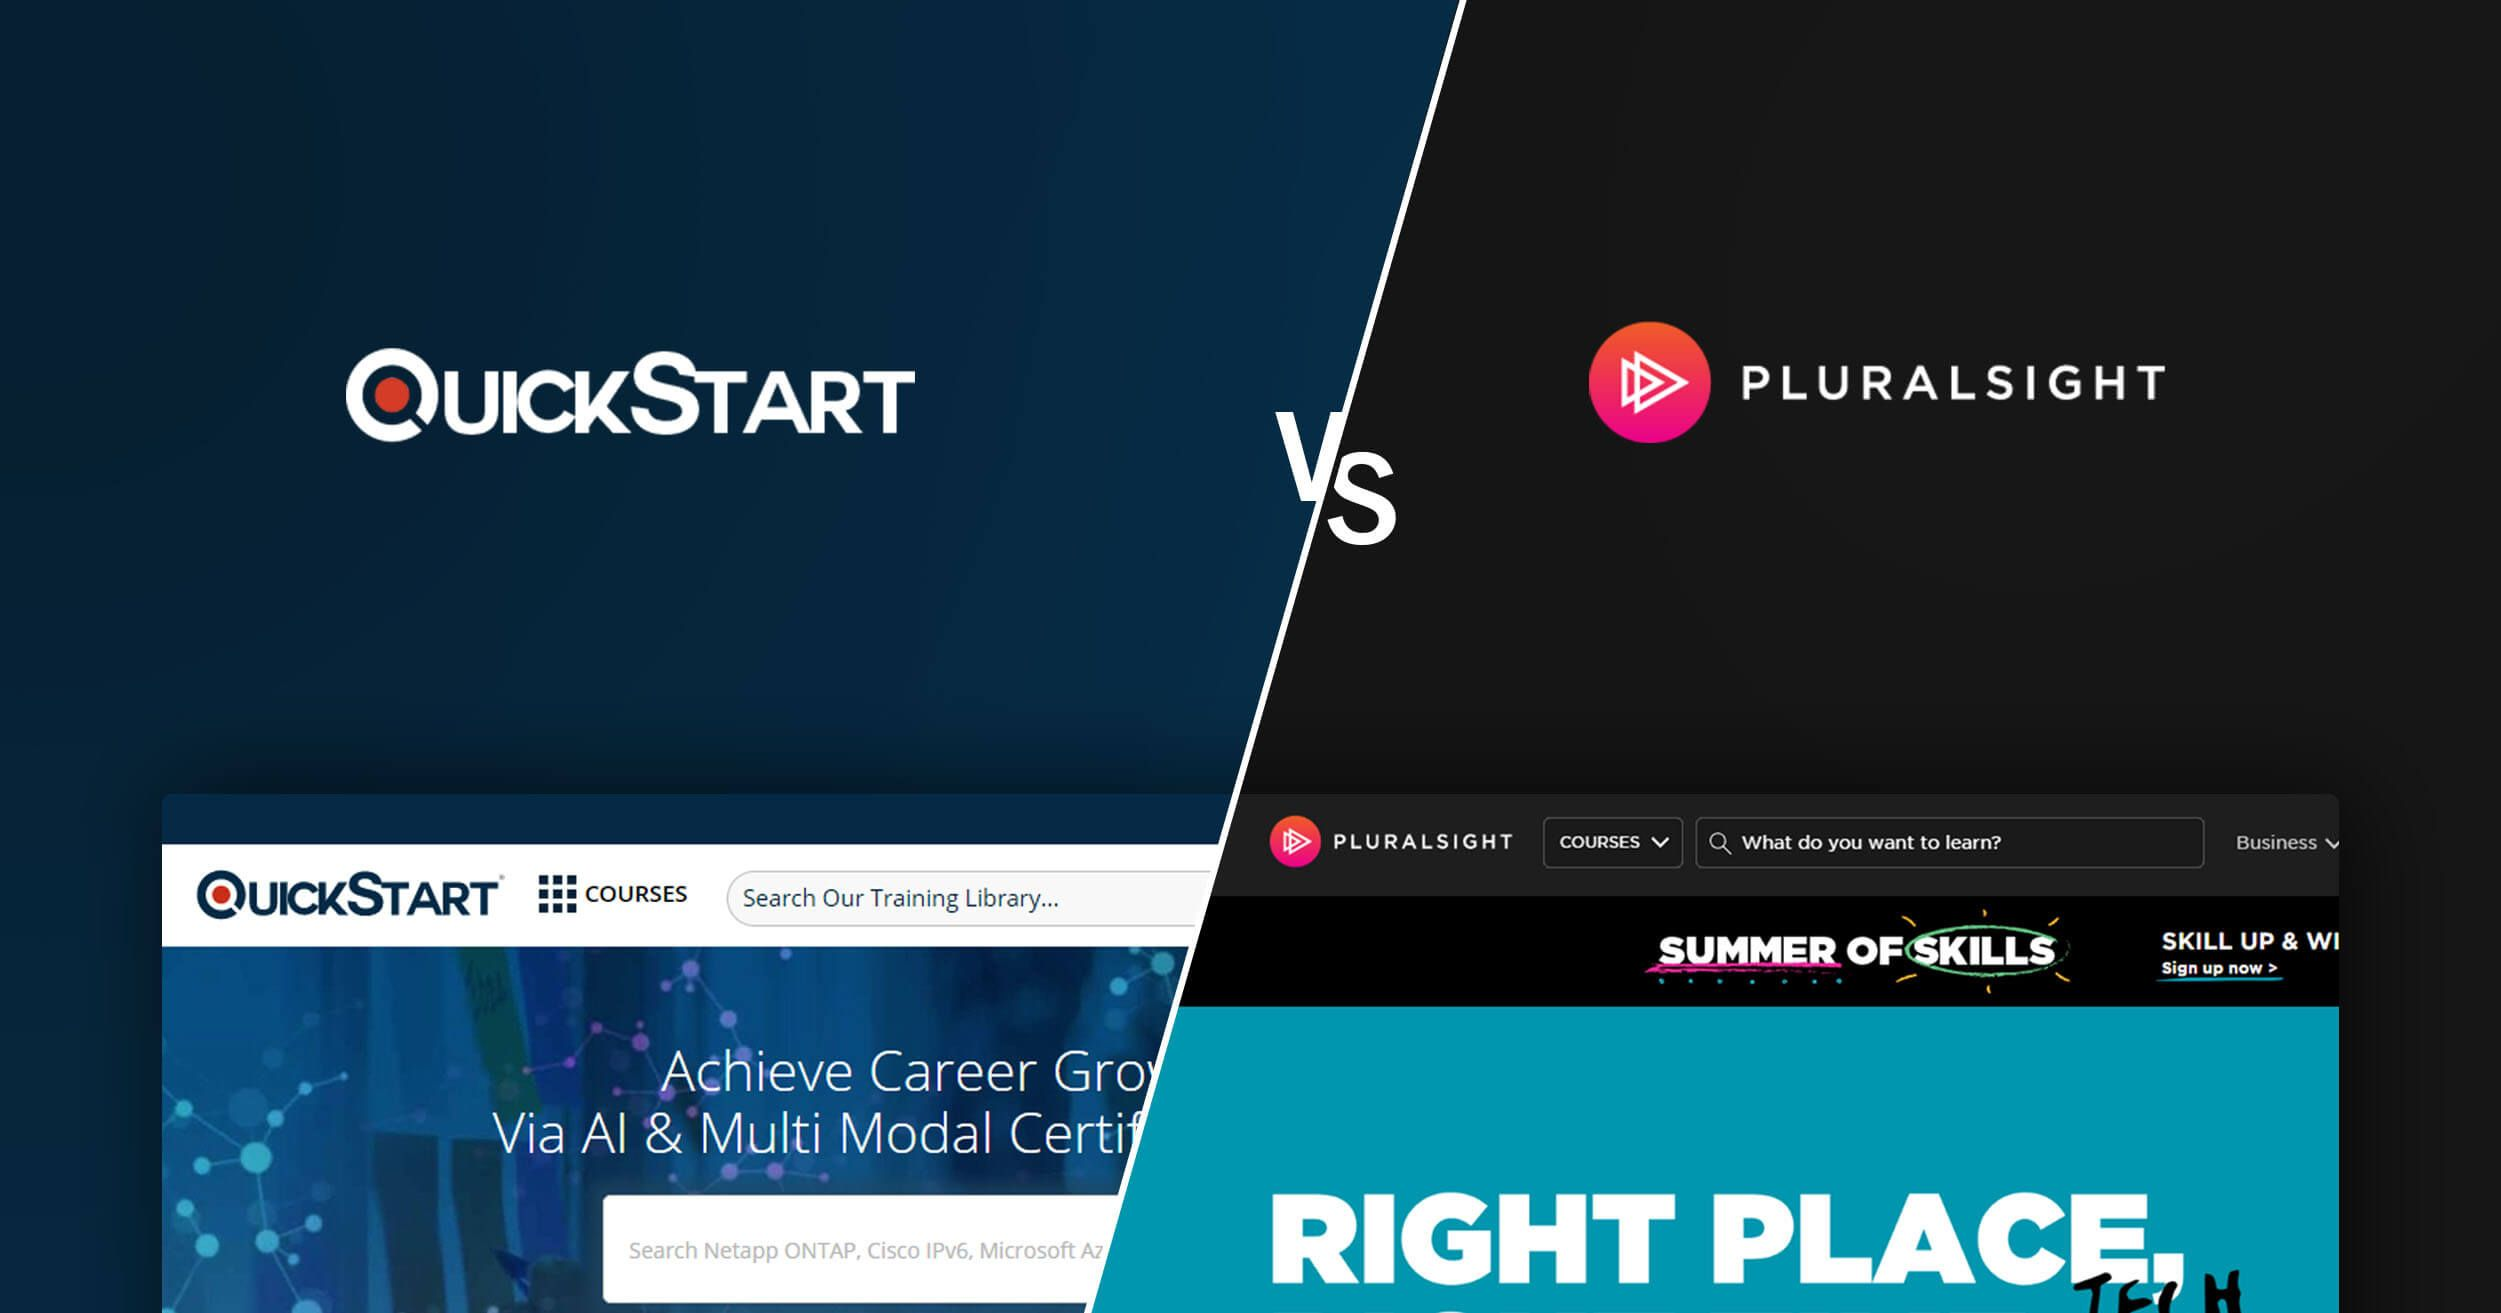 QuickStart vs PluralSight - A Factual Comparison